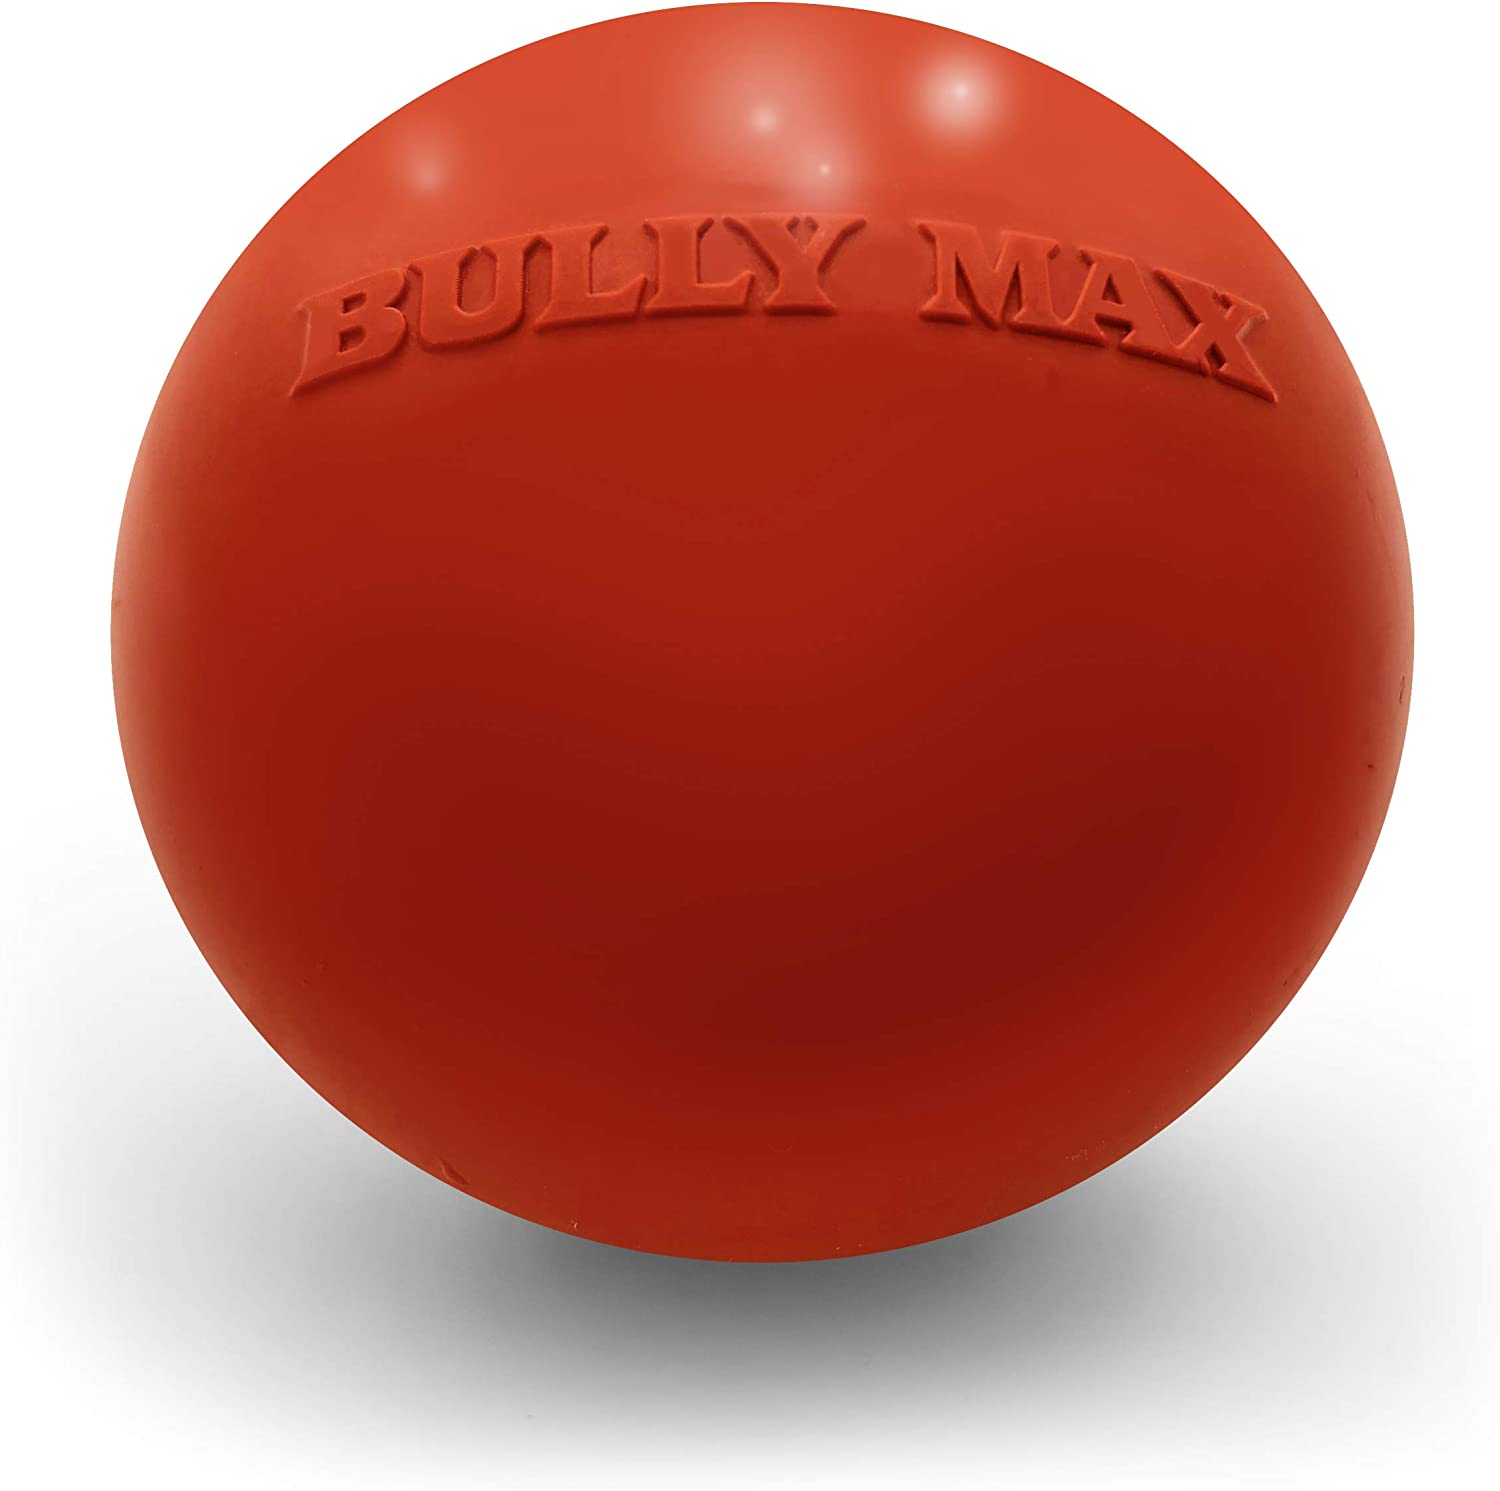 Bully Max Long Lasting Dog Chew Toy for Aggressive Chewers, Large Dogs, Puppies. Pit Bull Toys Guaranteed to Last a Lifetime. Cleans Your Dog's Teeth & Improves Mental Health.